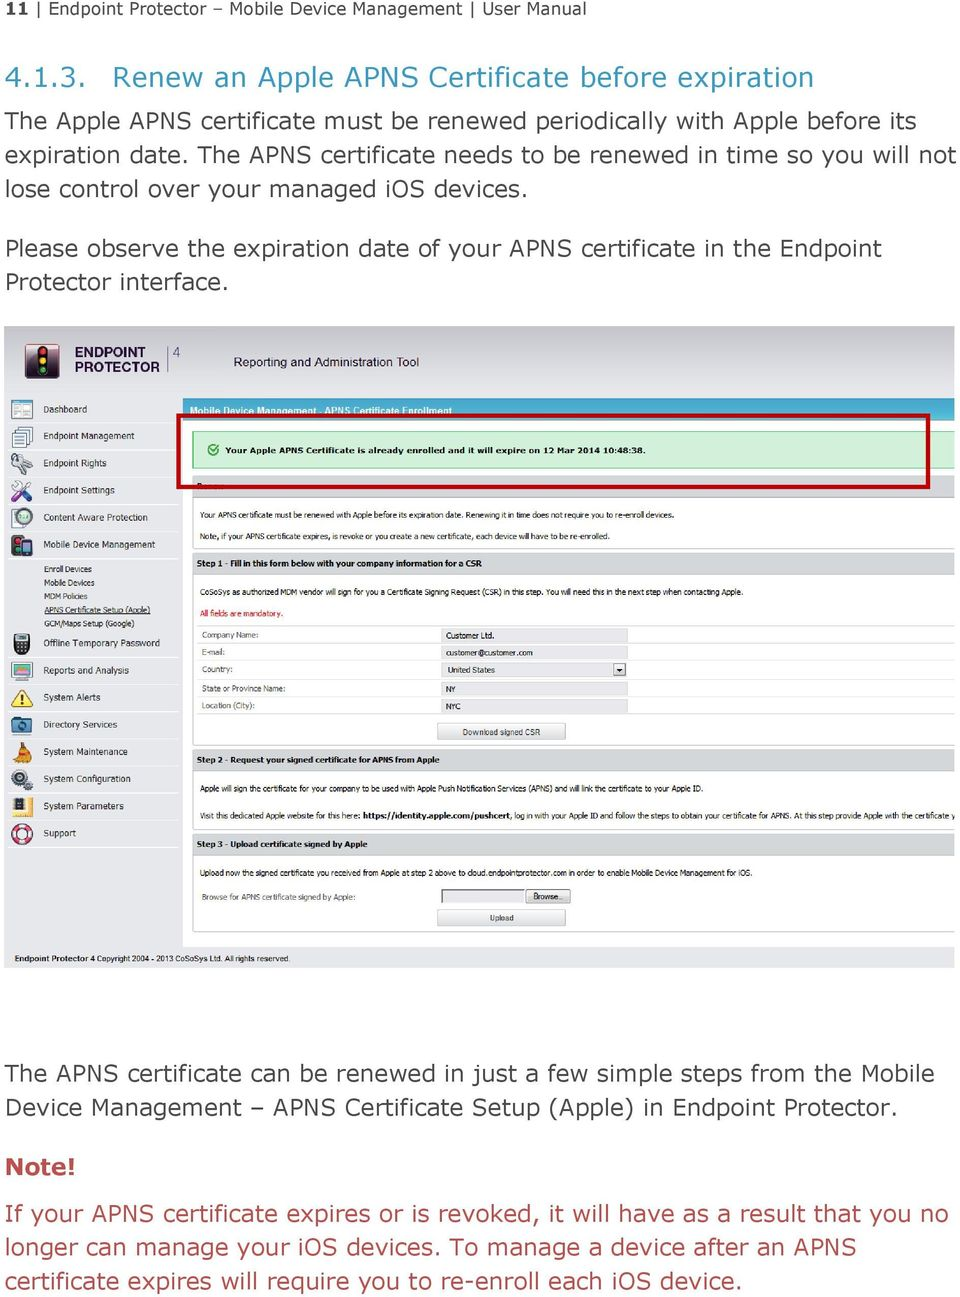 The APNS certificate needs to be renewed in time so you will not lose control over your managed ios devices.